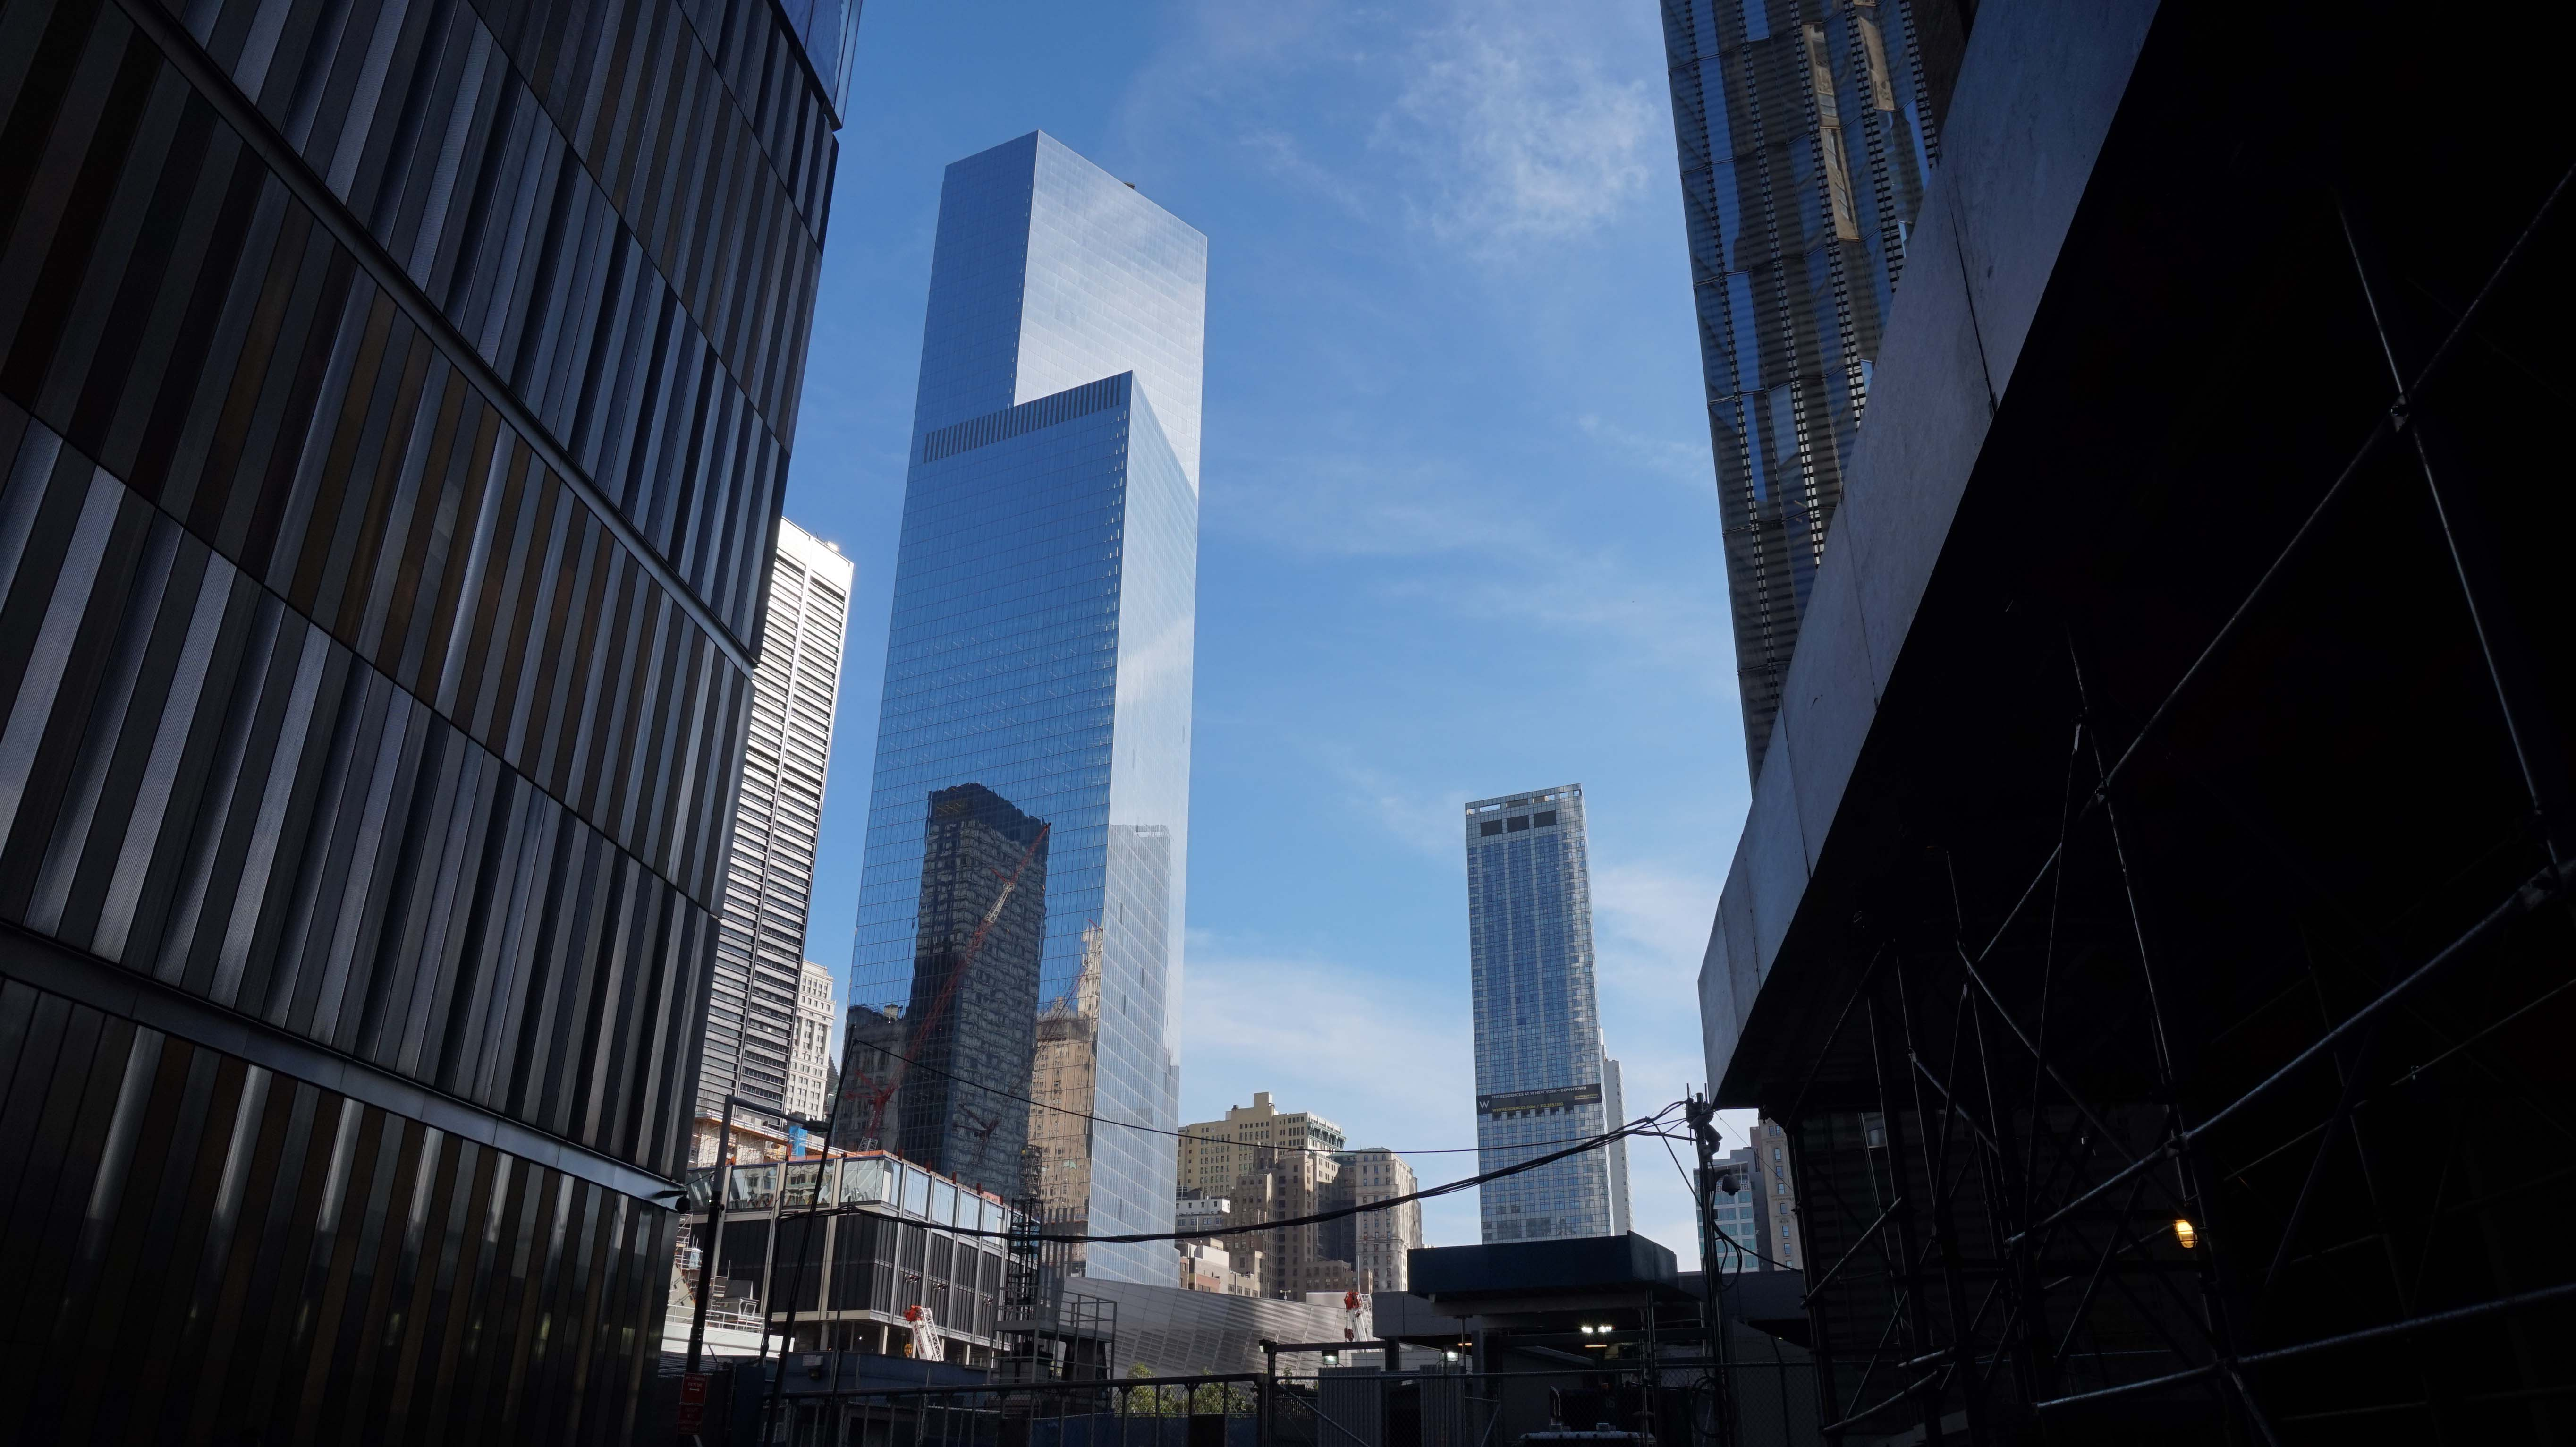 WTC Tower 4 from the north looking south